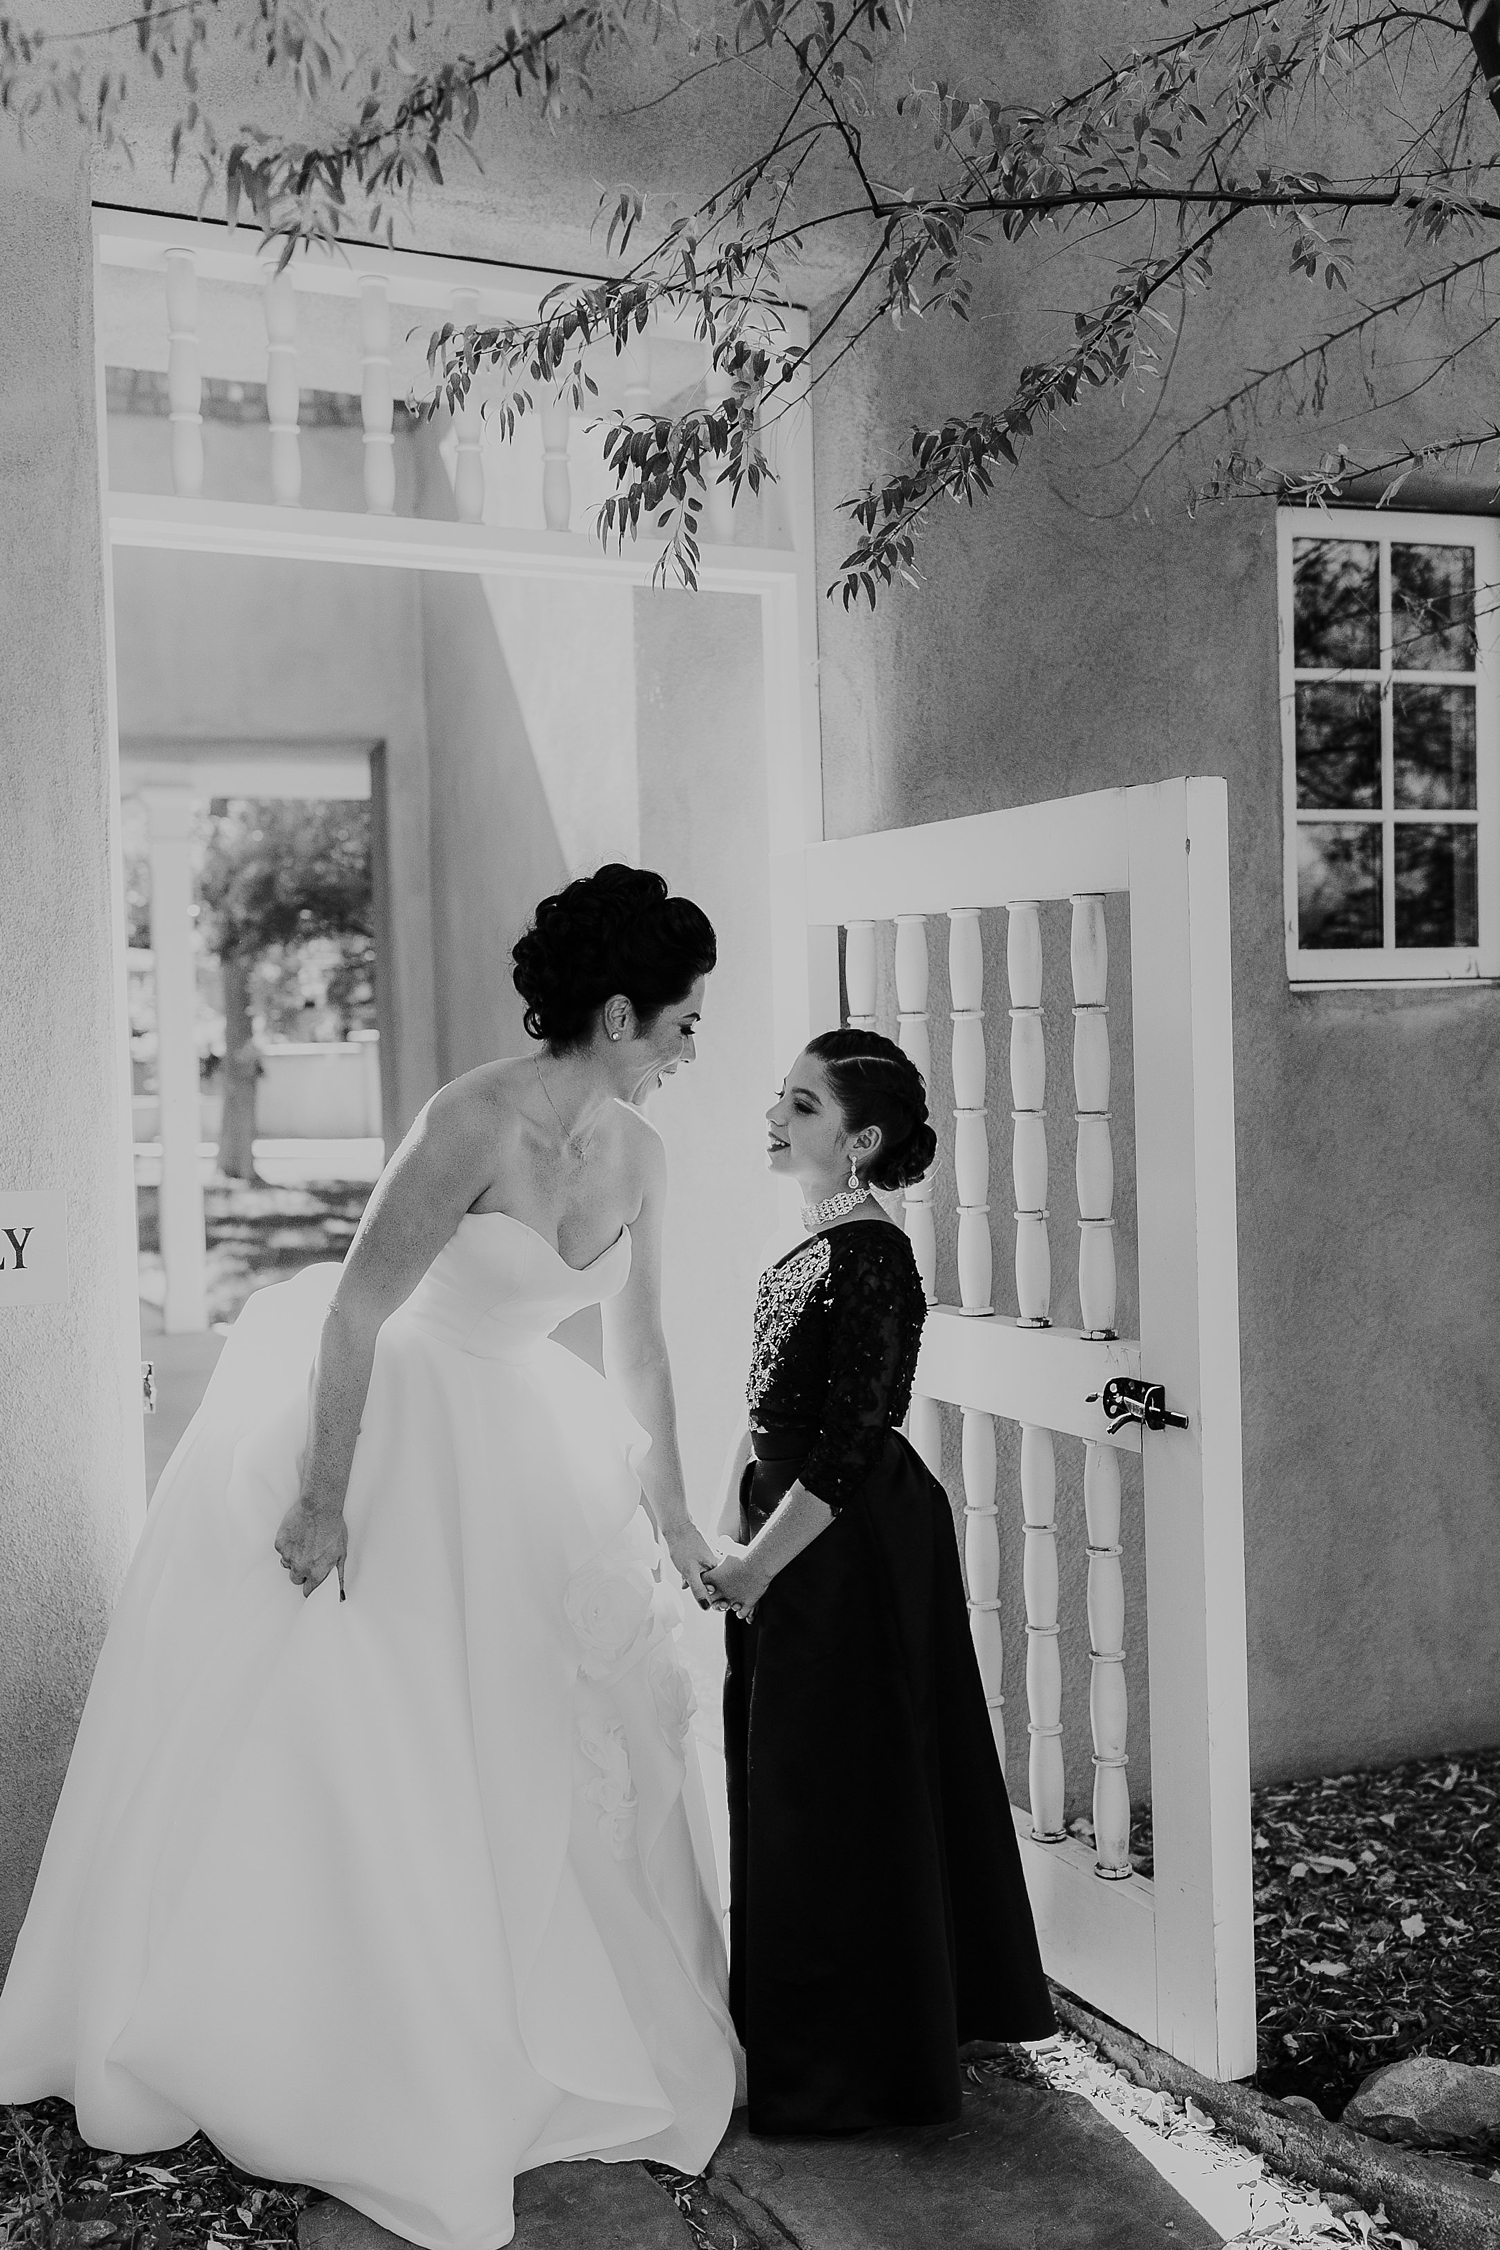 Alicia+lucia+photography+-+albuquerque+wedding+photographer+-+santa+fe+wedding+photography+-+new+mexico+wedding+photographer+-+los+poblanos+wedding+-+los+poblanos+fall+wedding+-+los+poblanos+october+wedding_0019.jpg